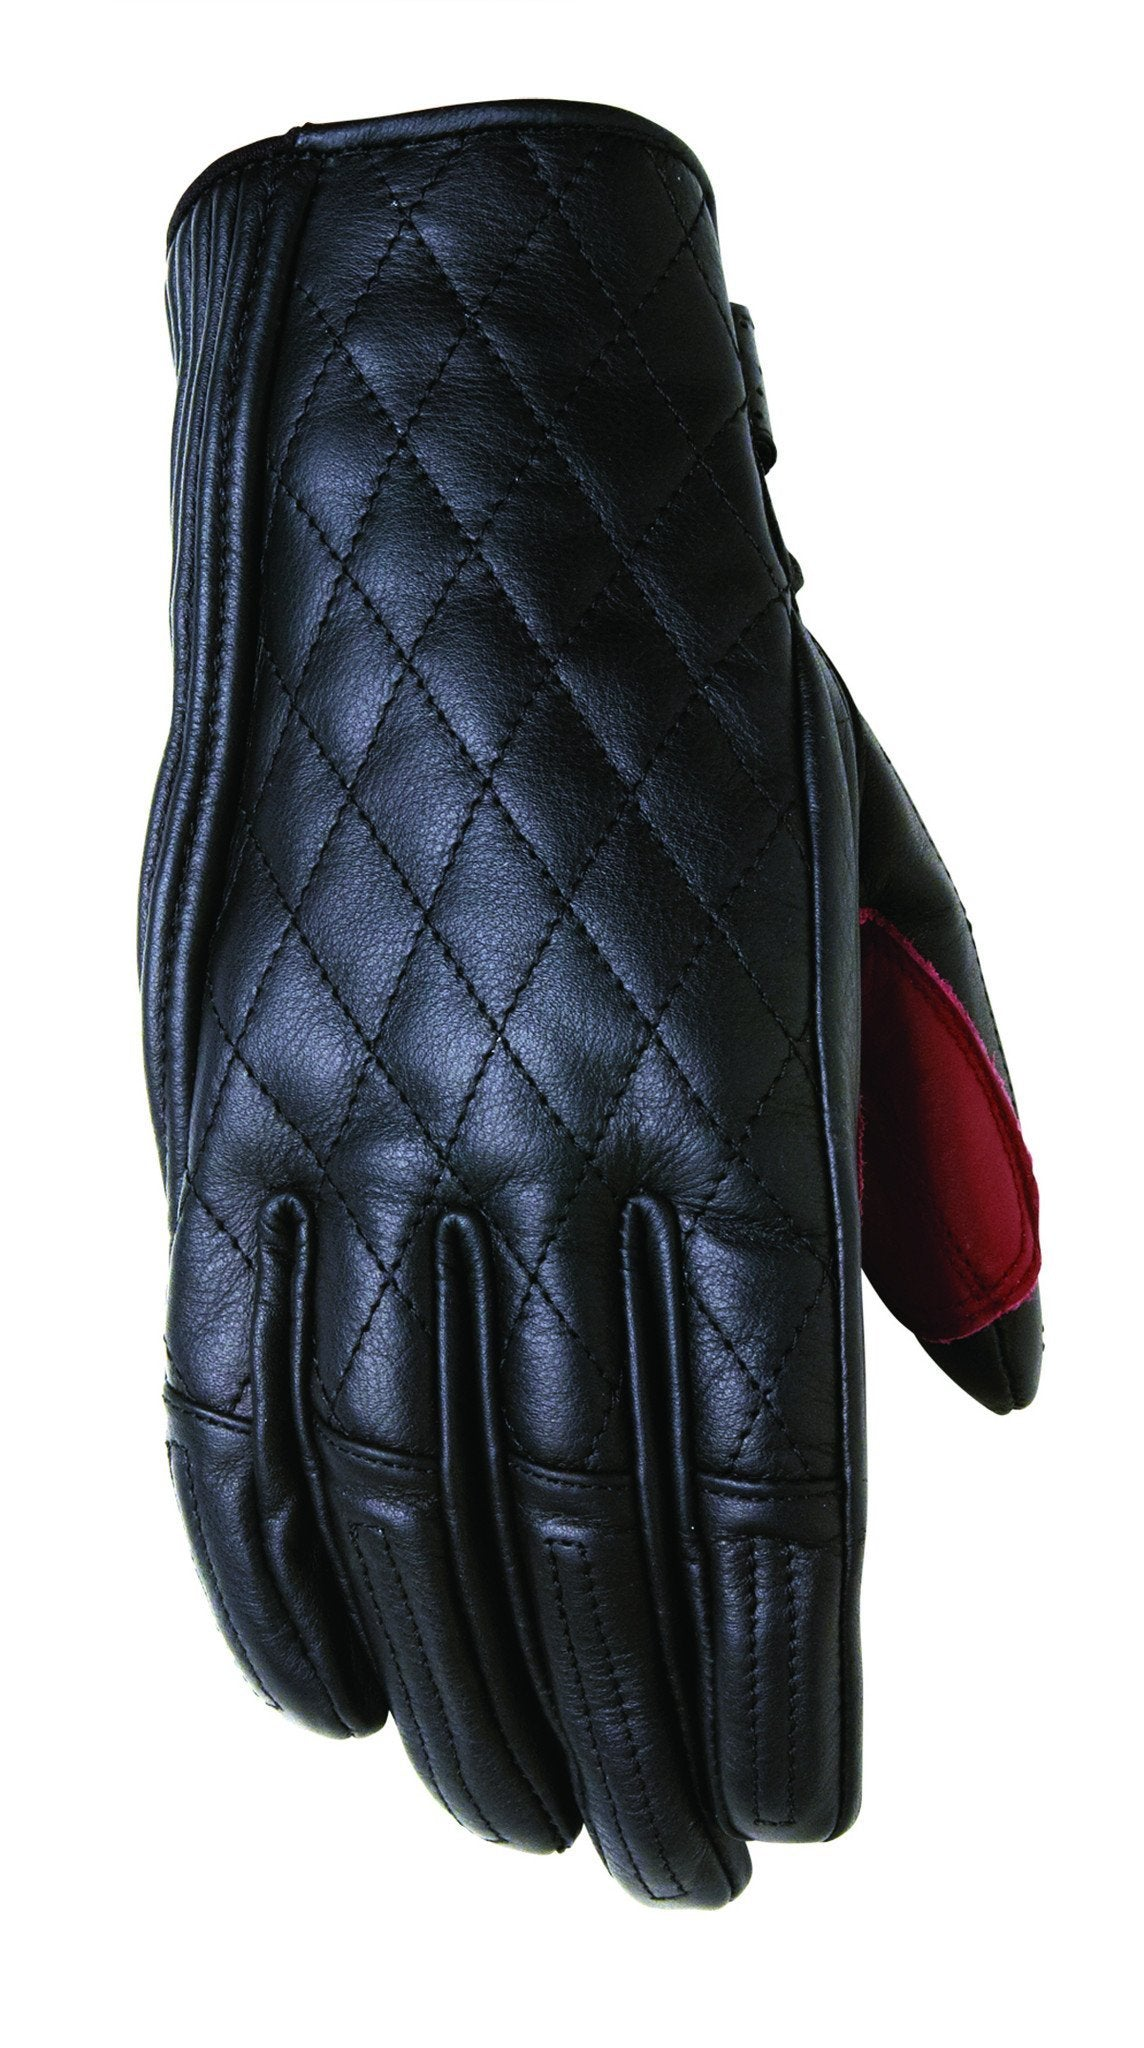 Roland Sands Design - Roland Sands Design Riot Ladies Gloves - Black - Gloves - Salt Flats Clothing